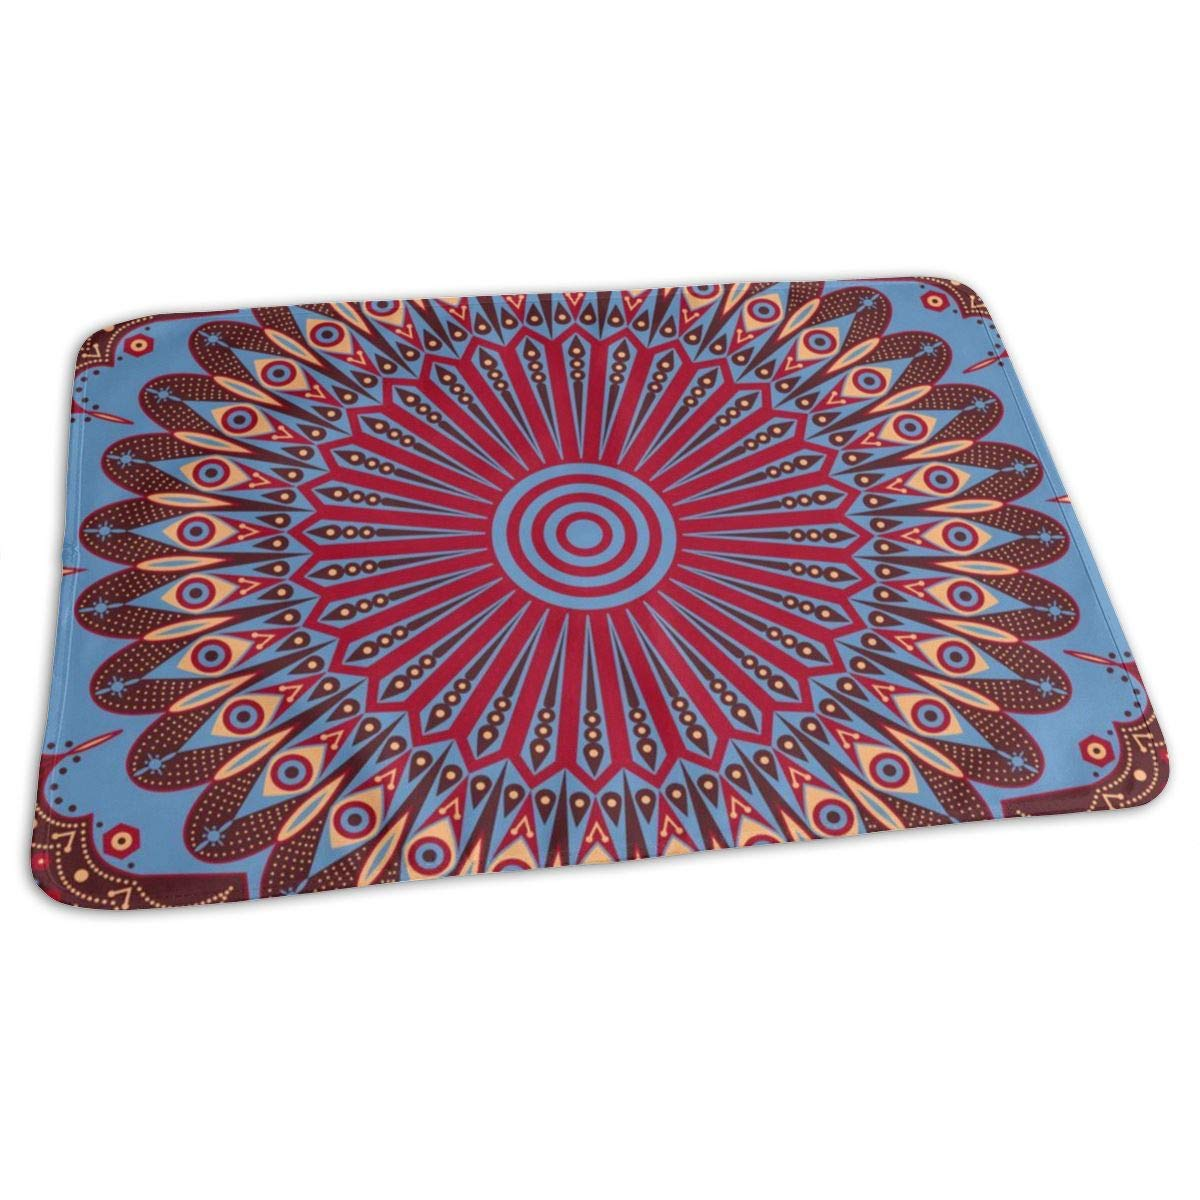 Osvbs Lovely Baby Reusable Waterproof Portable Gules Ethnic Arabesque Background Changing Pad Home Travel 27.5''x19.7'' by Osvbs